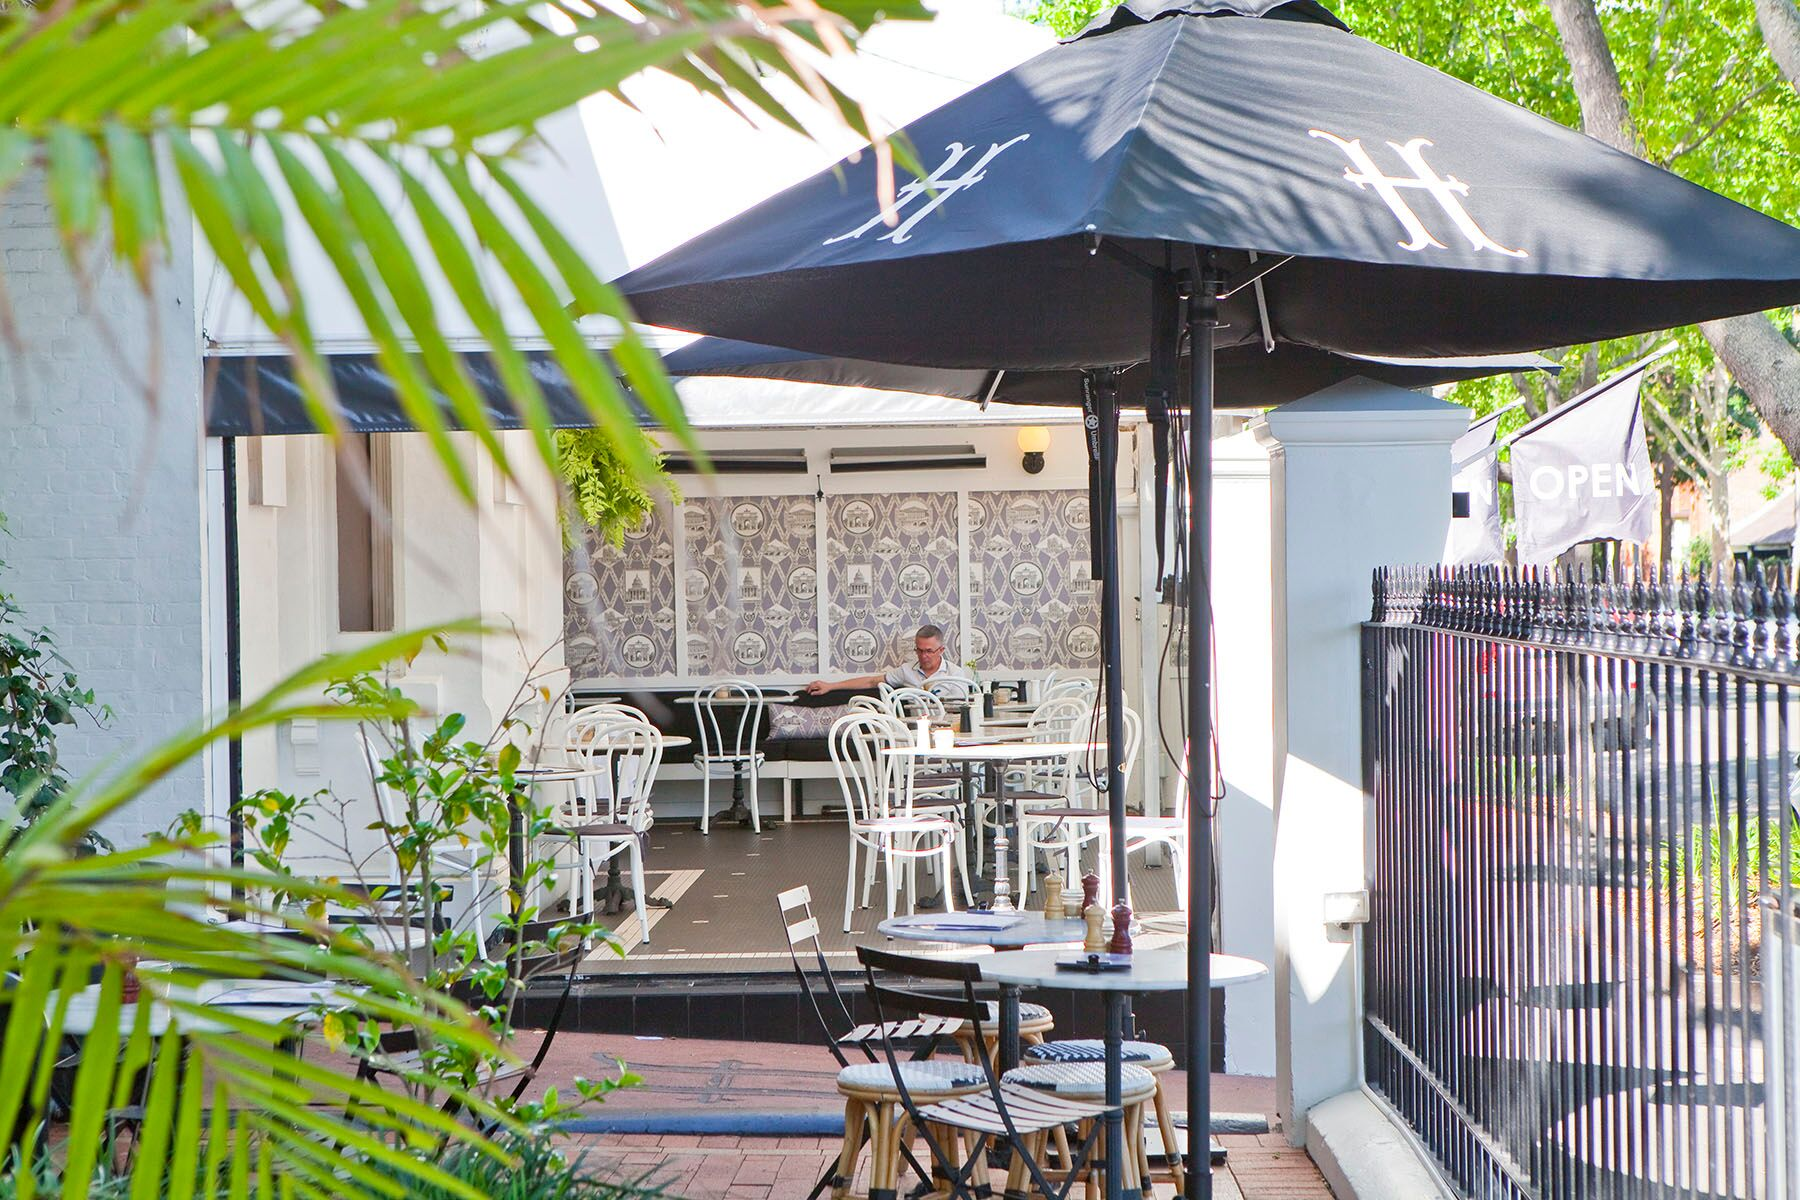 Cafe & Terrace - all dogs welcome gallery image